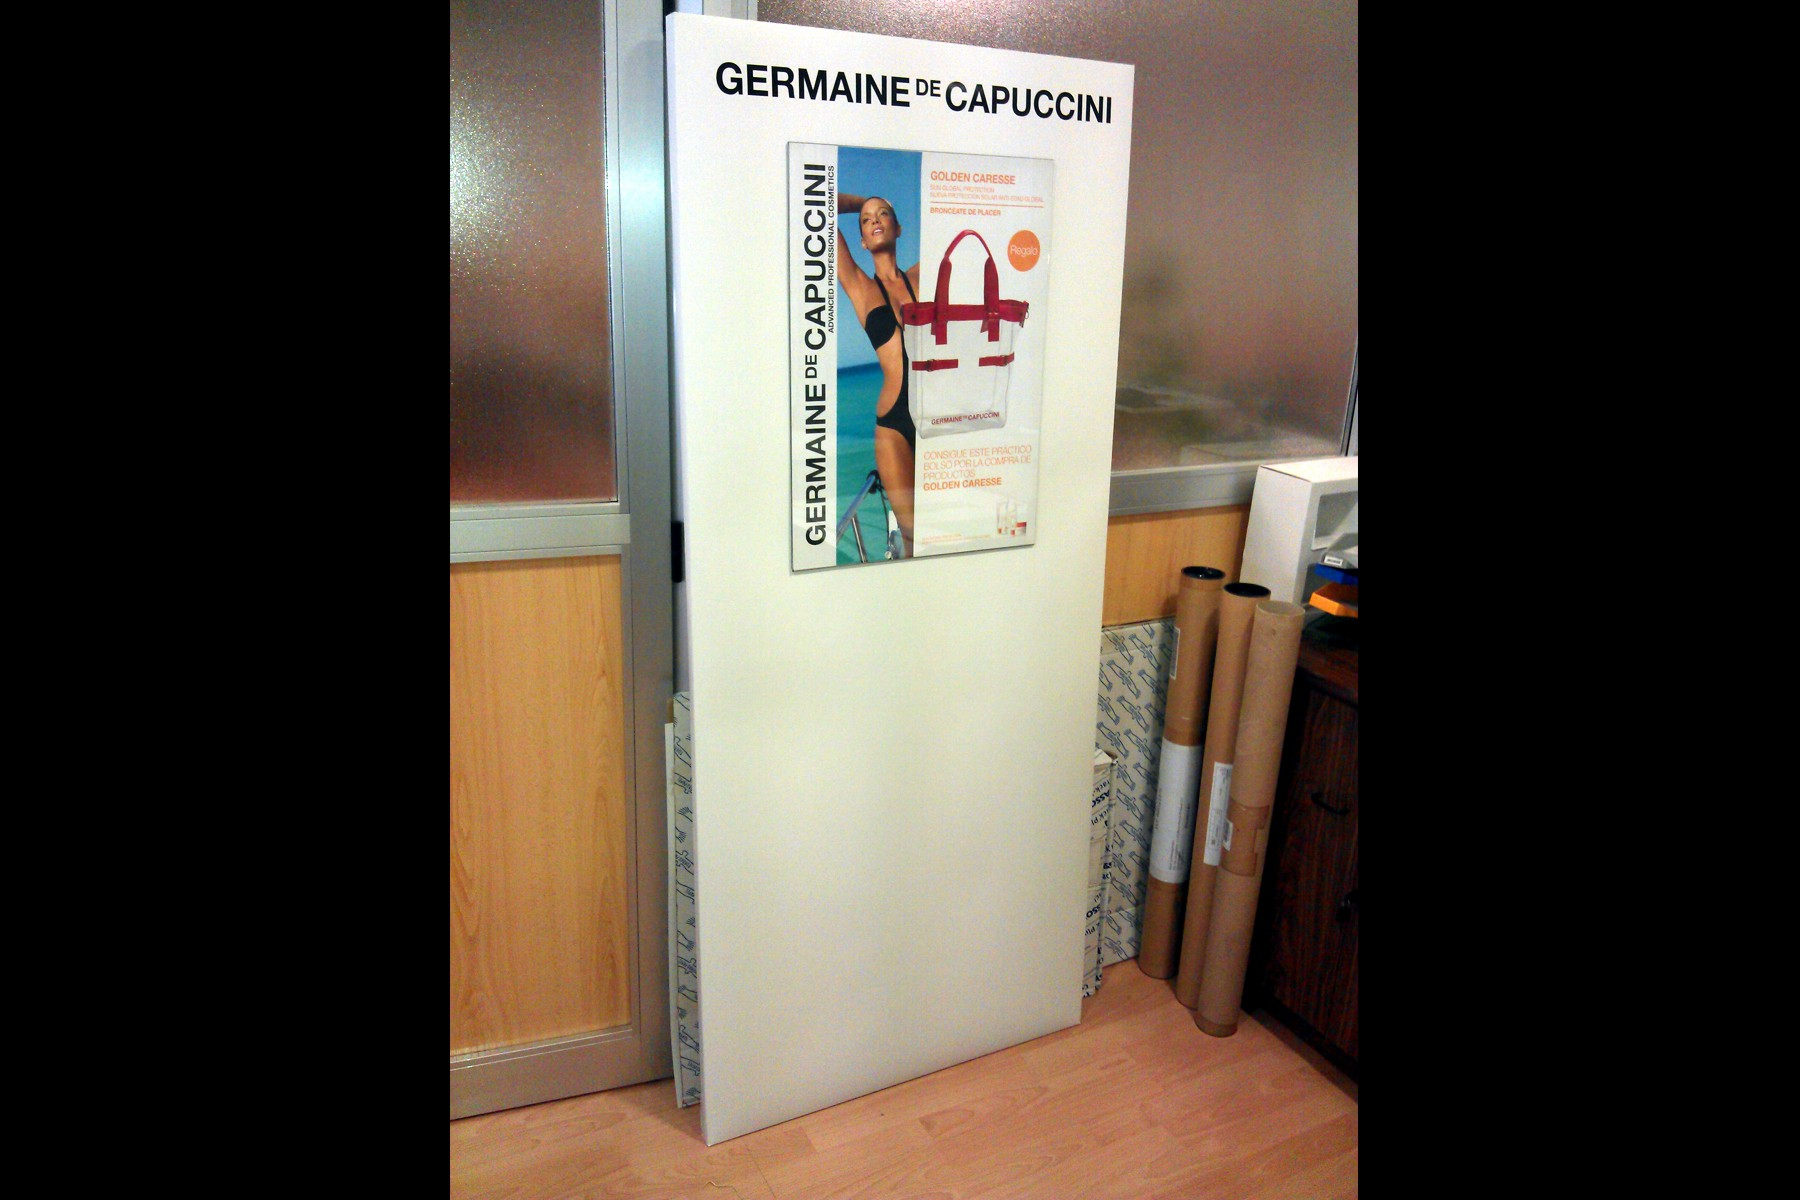 ESCAPARATE-GERMAINE-DE-CAPUCCINI-96A1